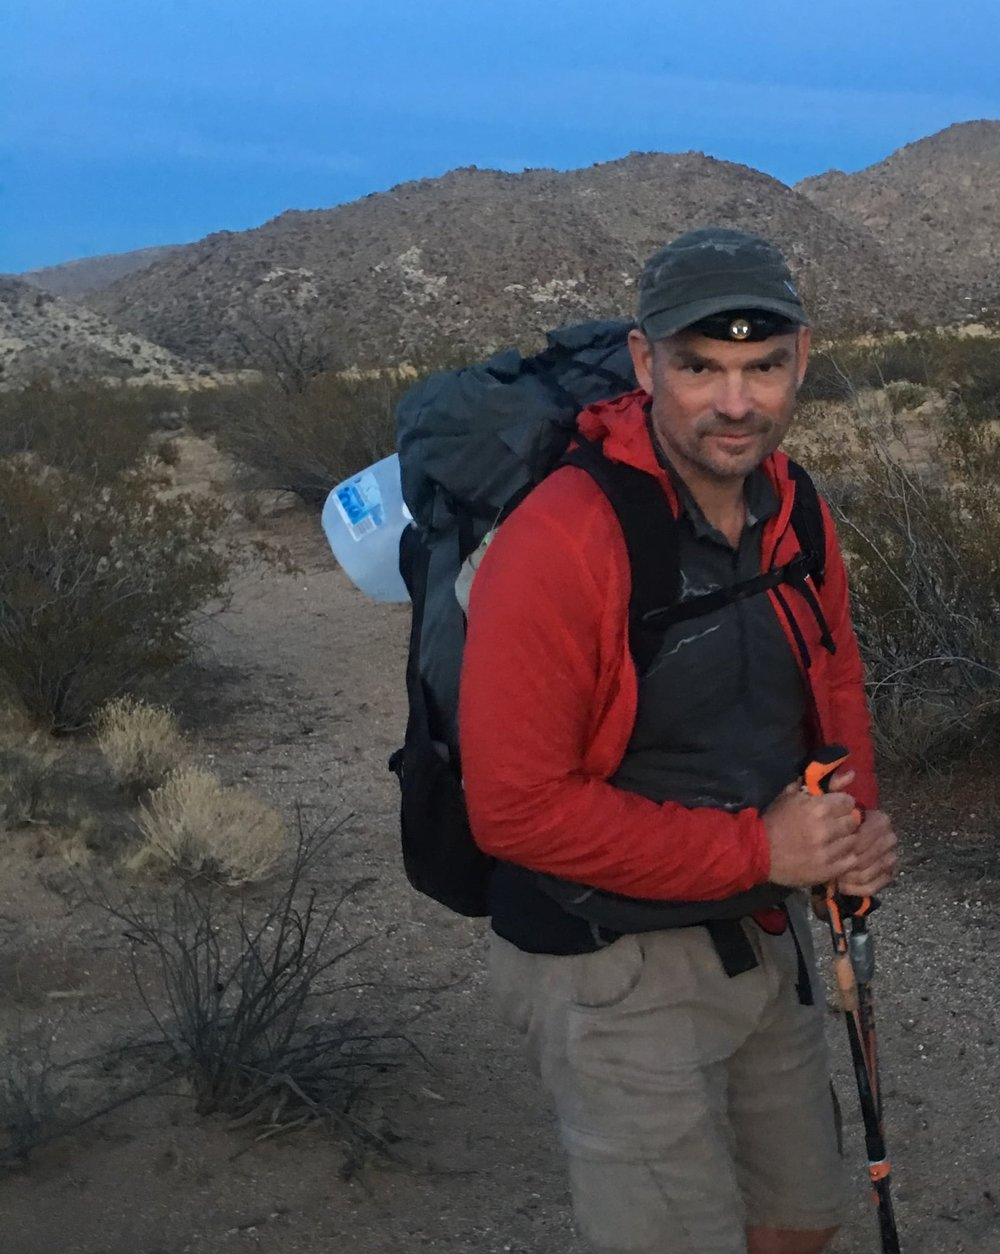 The author with his Katabatic Onni V40 65 pack.